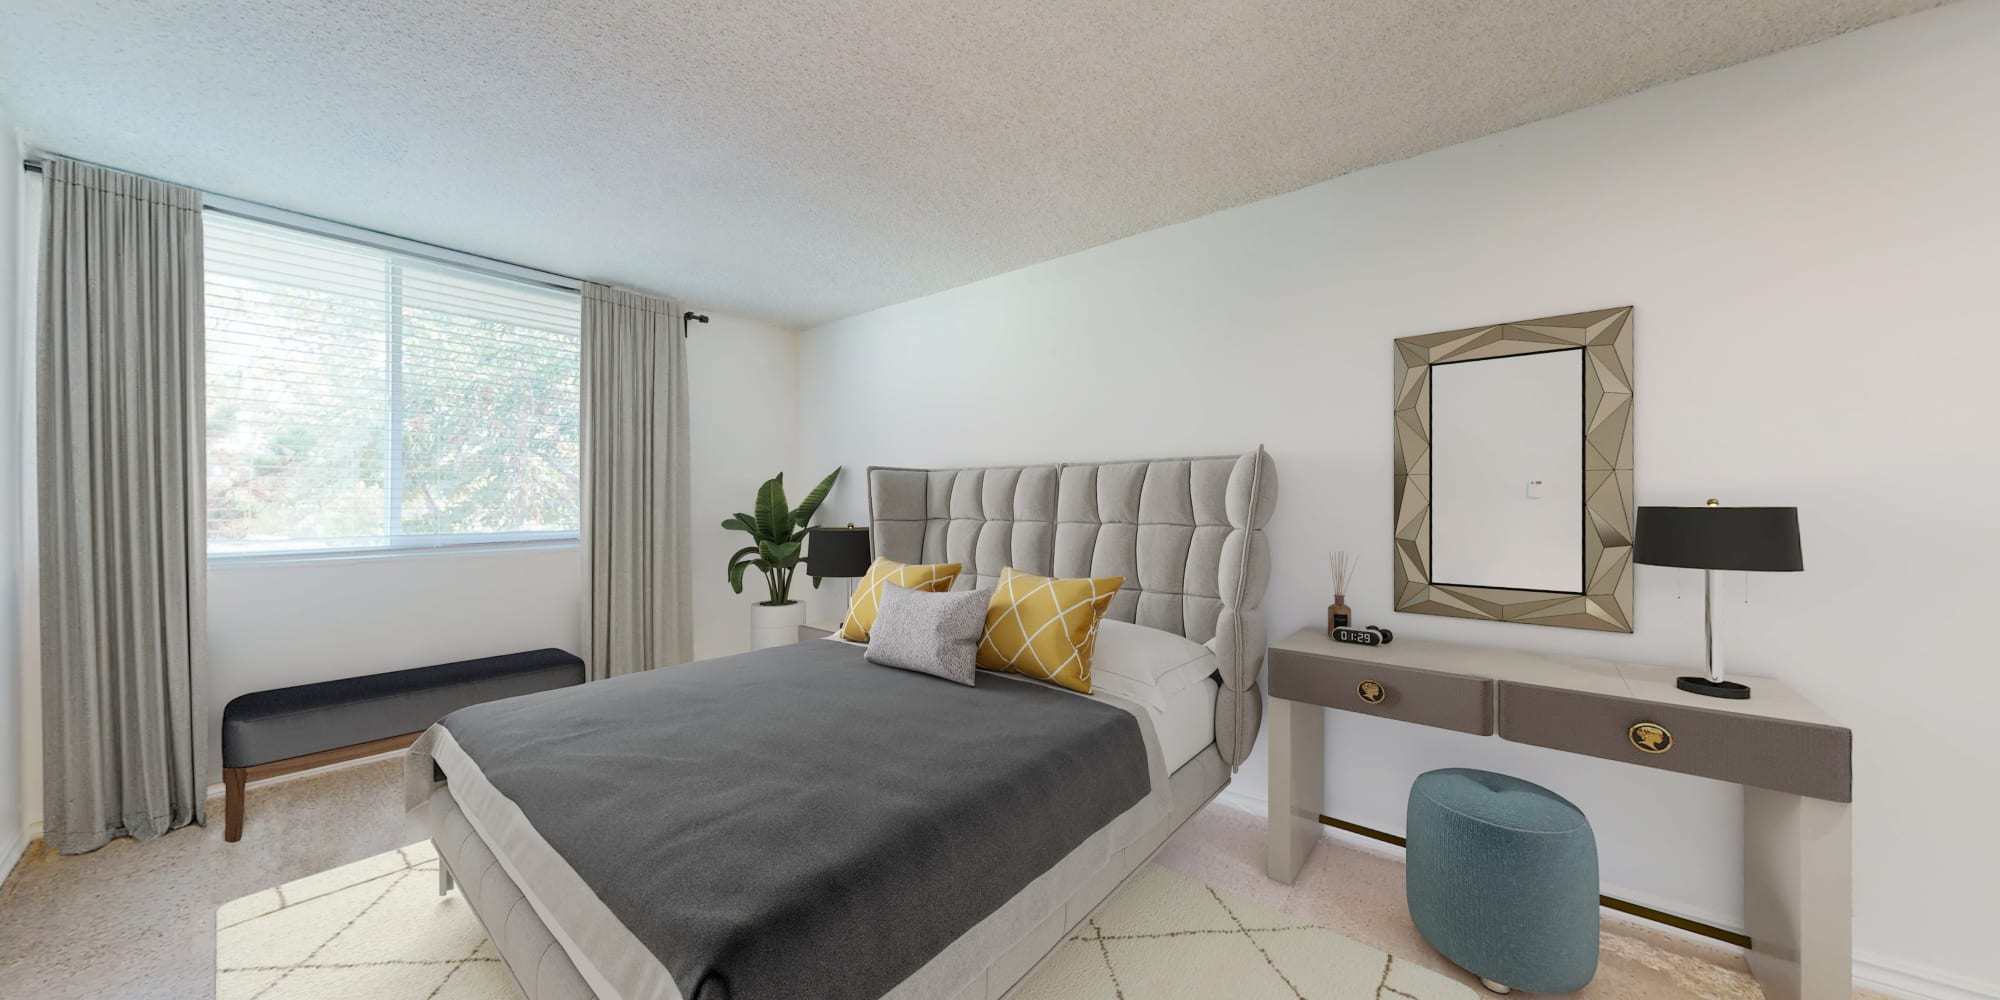 Spacious bedroom in a two-bedroom apartment home at Sunset Barrington Gardens in Los Angeles, California